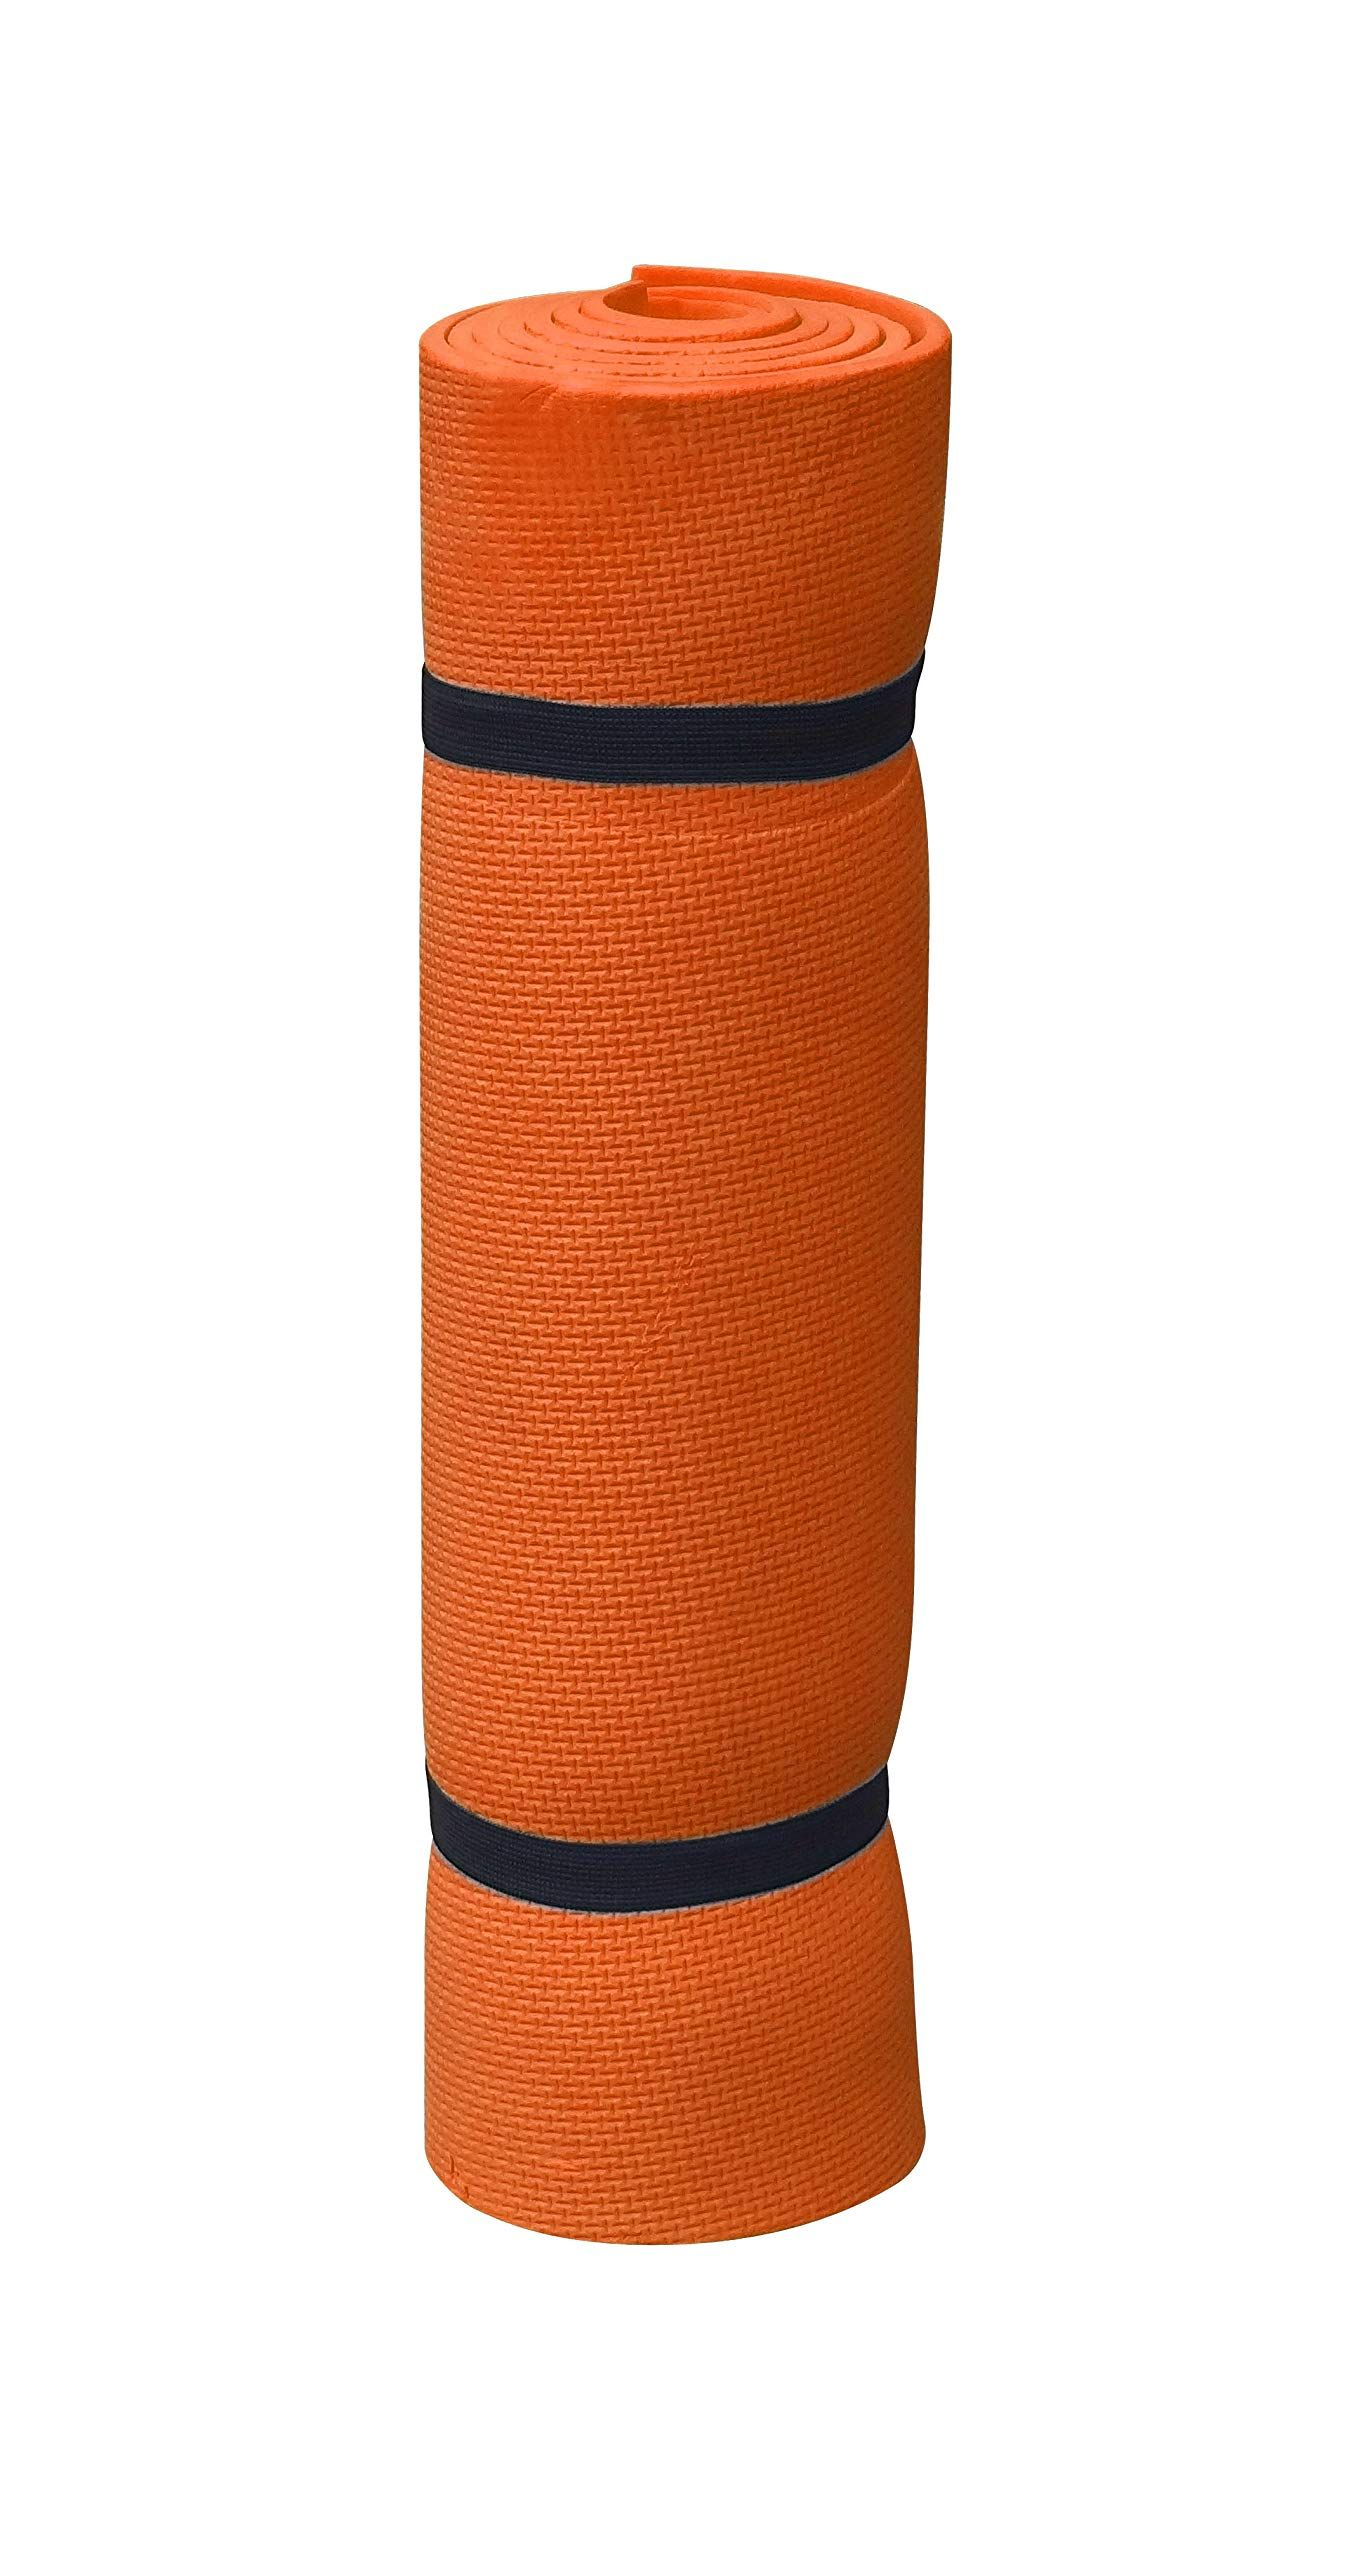 Gigatent Rest N Roll Easy Store Single Camping Foam Sleeping Pad Exercise Mat Comfort Standing Kitchen Mat Play Mat With Sleeping Pads Play Mat Mat Exercises